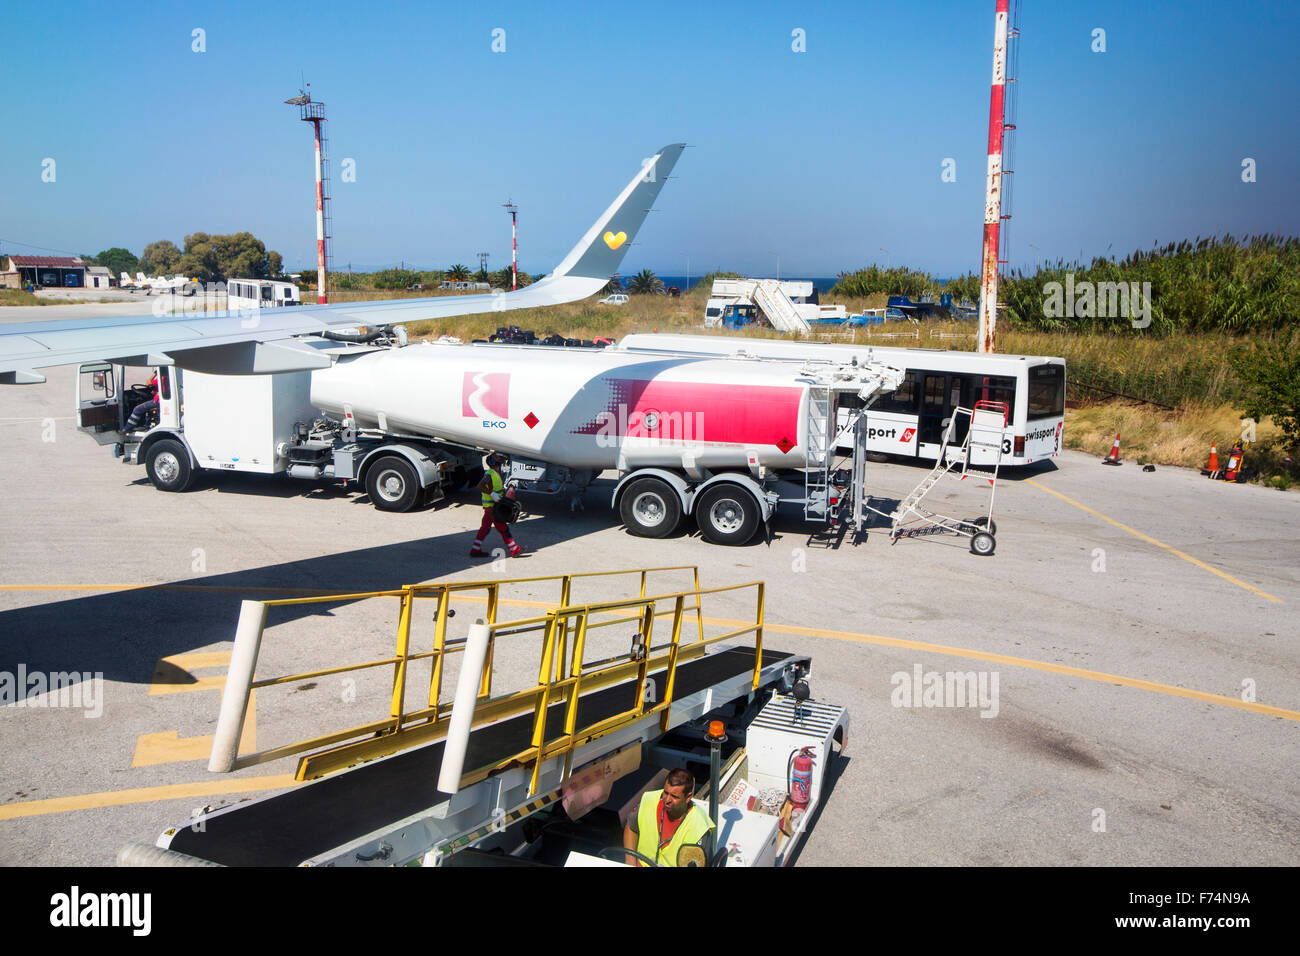 Baggage handlers and a refuelling tanker at Mytilene airport on Lesvos, Greece. Stock Photo